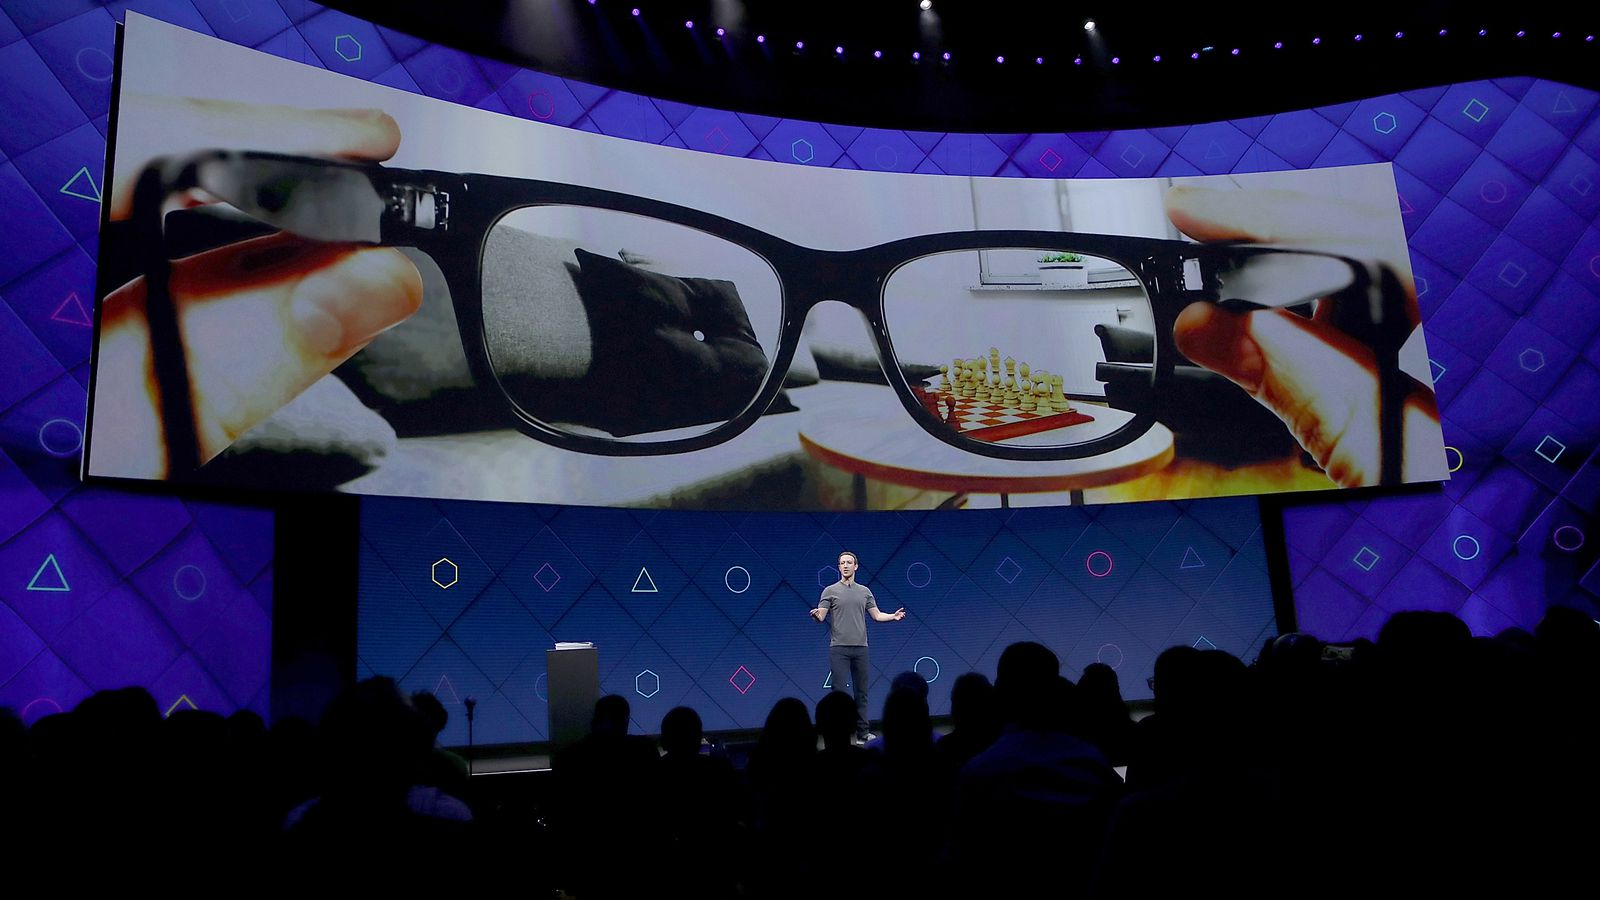 Facebook's Plans to Augment Reality are as Dystopian as They are Smart